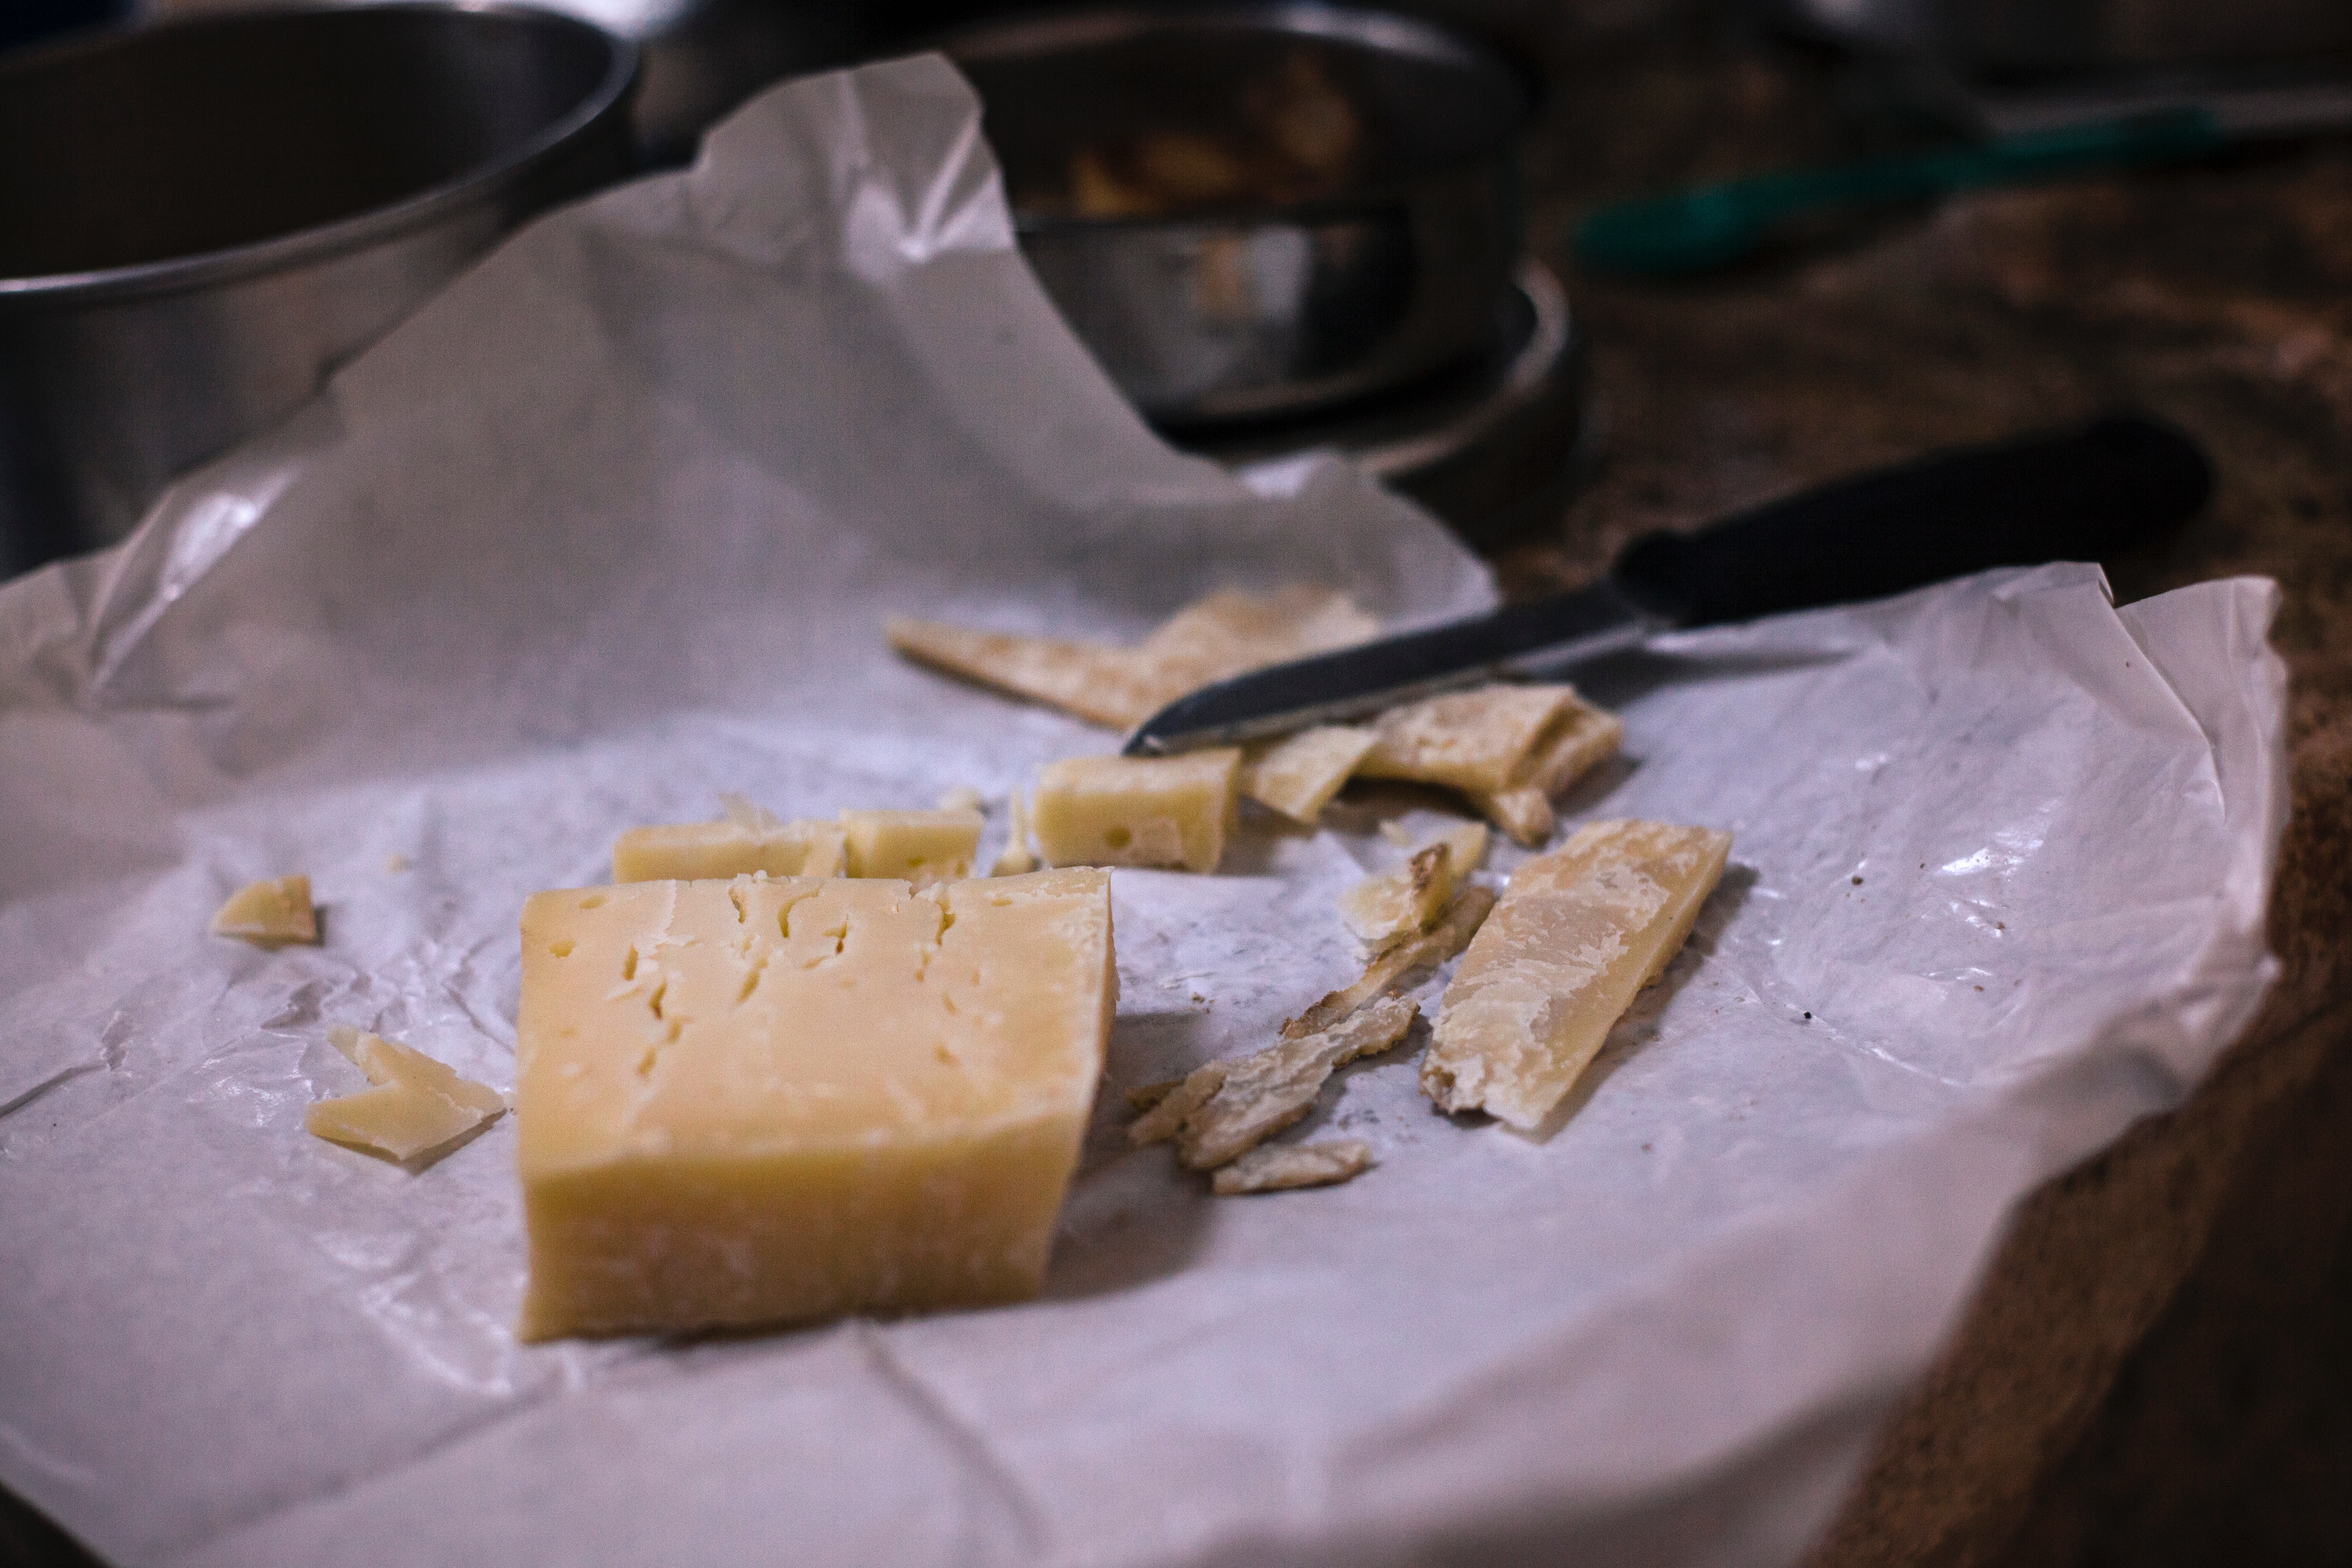 Sliced Yellow Cheese, Cheese, Close-up, Dairy product, Delicious, HQ Photo